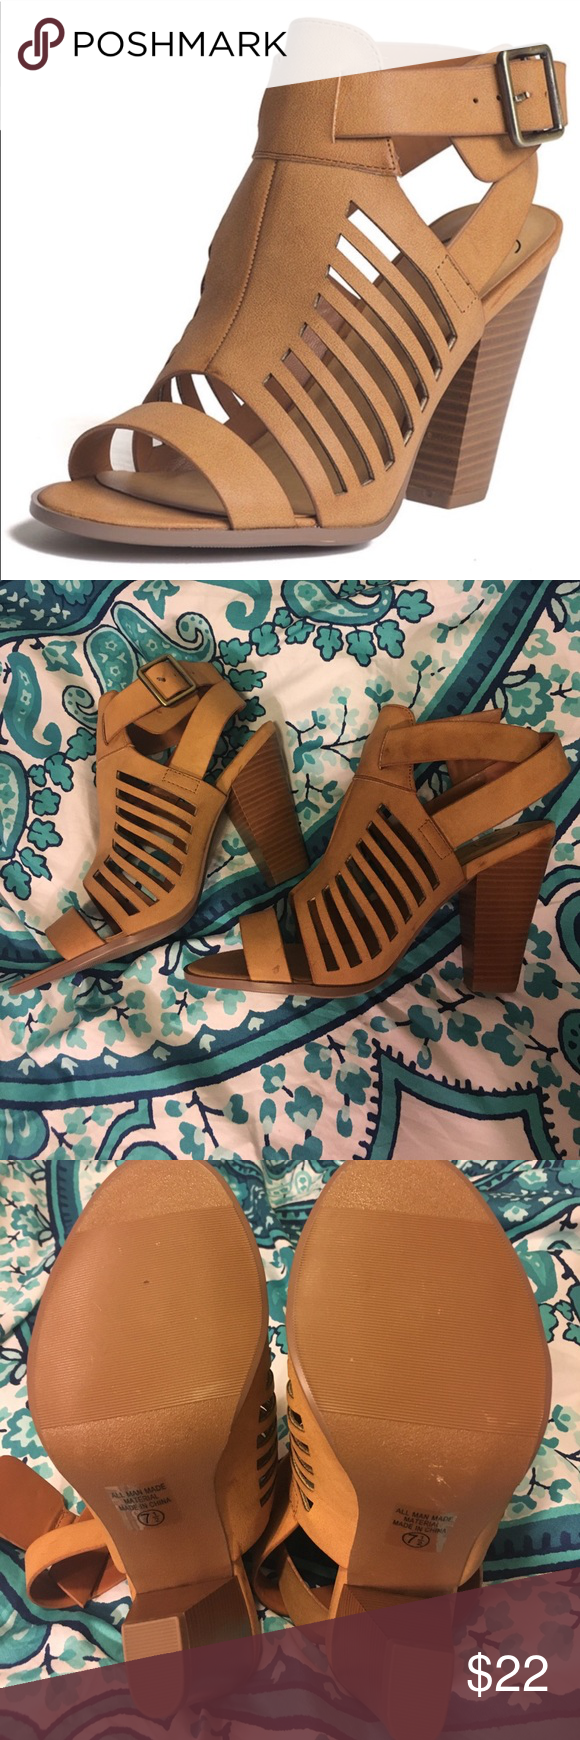 Tan heel sandals Very cute perfect for spring/summer. Never worn, in perfect condition! Shoes Heels